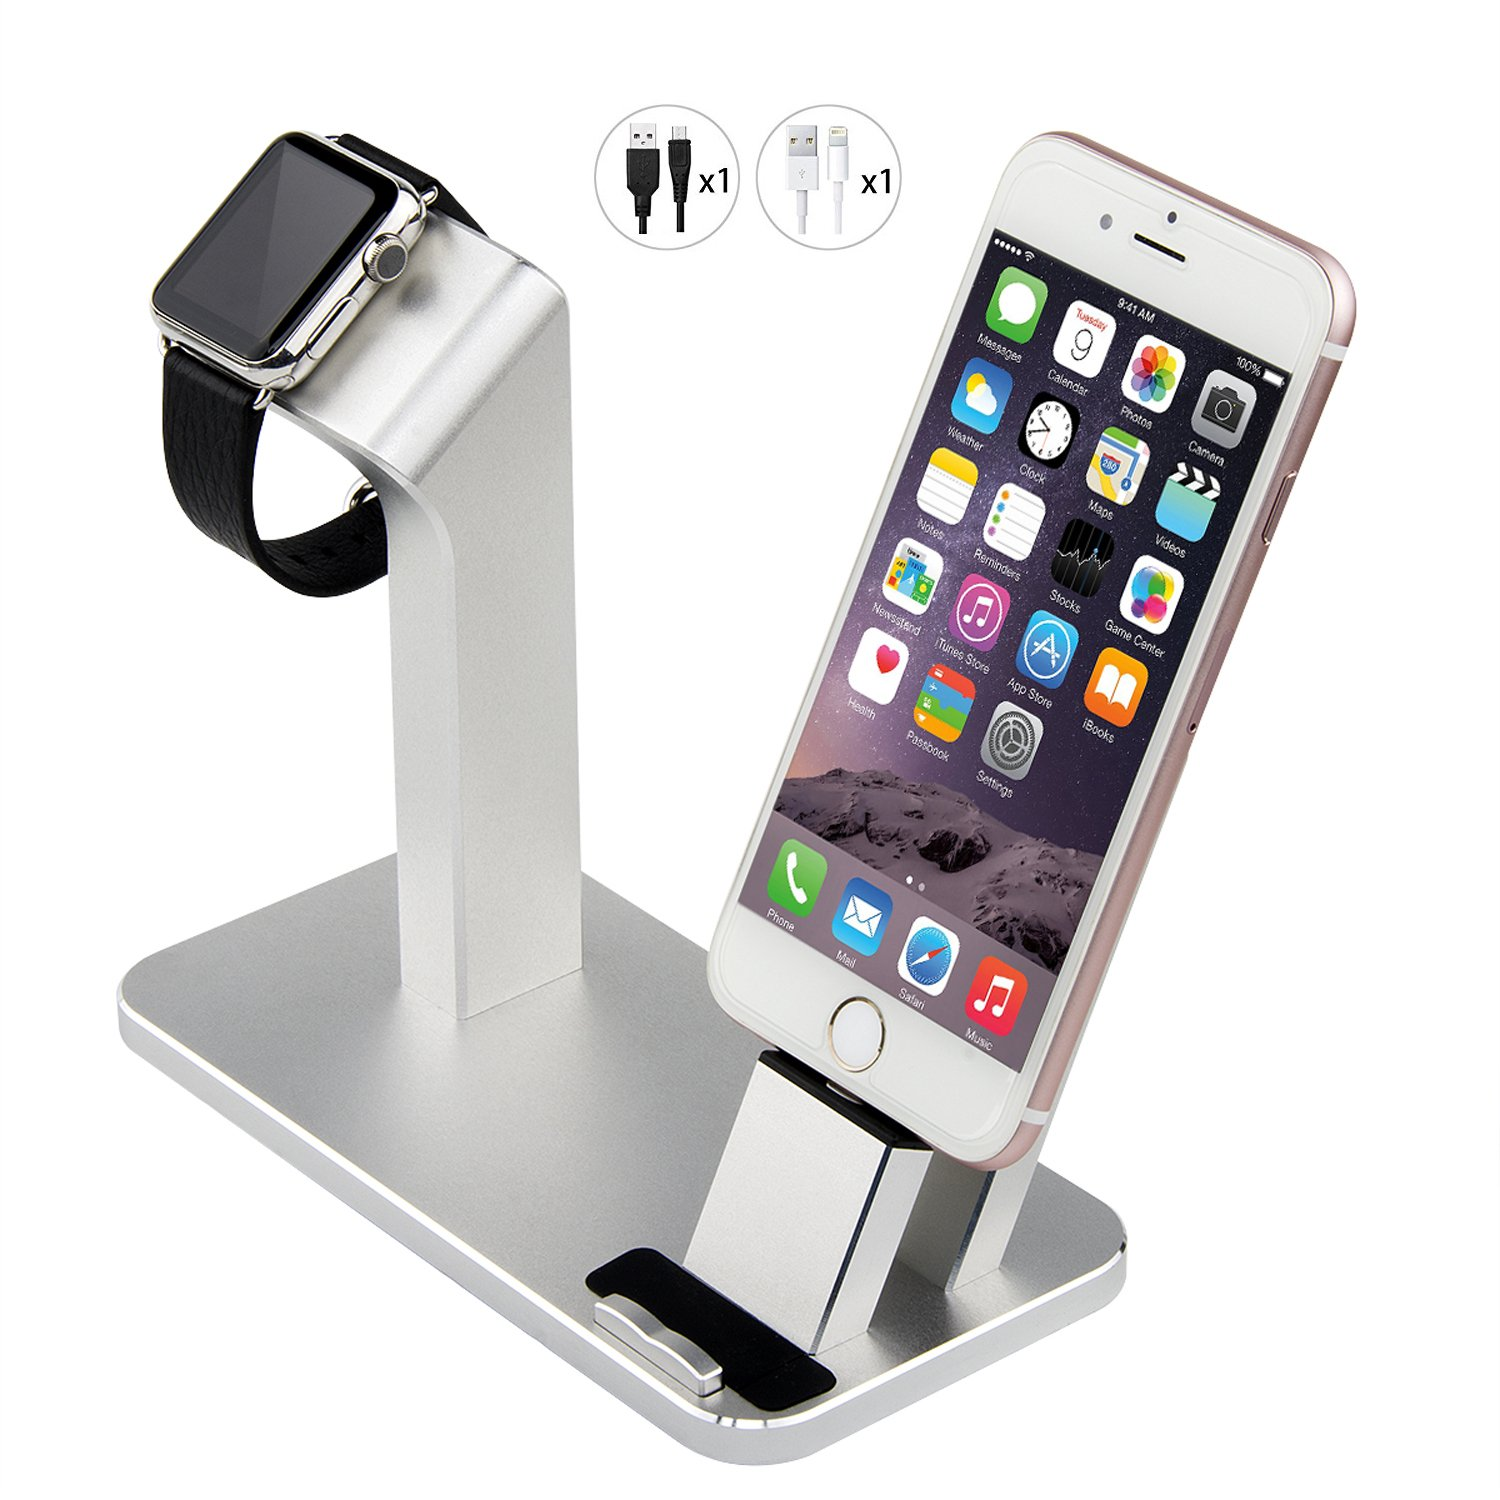 Apple Watch Stand, Aluminum Charging Stand Holder Cradle for Apple watch 38mm 42mm/iPad/iPhone7Plus/7/6Plus/6s/6/SE/5S/5(iPhone cable Included)sliver